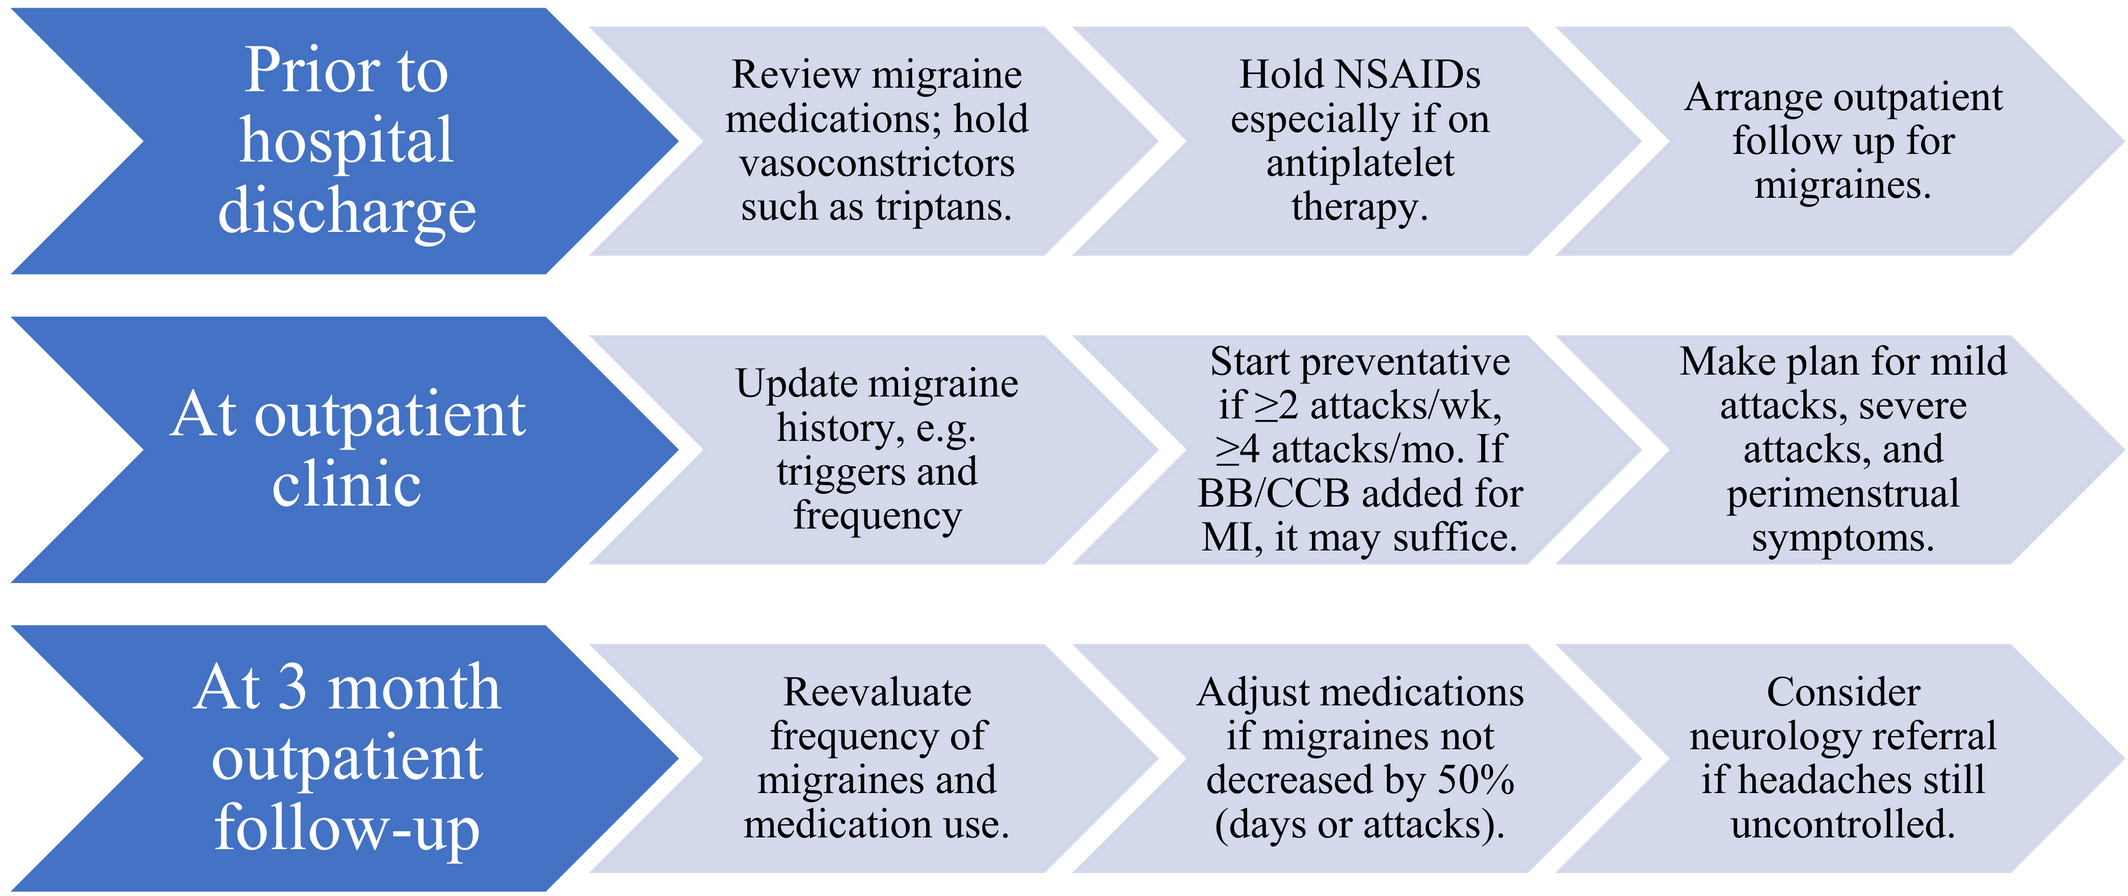 Prevalence and Clinical Factors of Migraine in Patients With